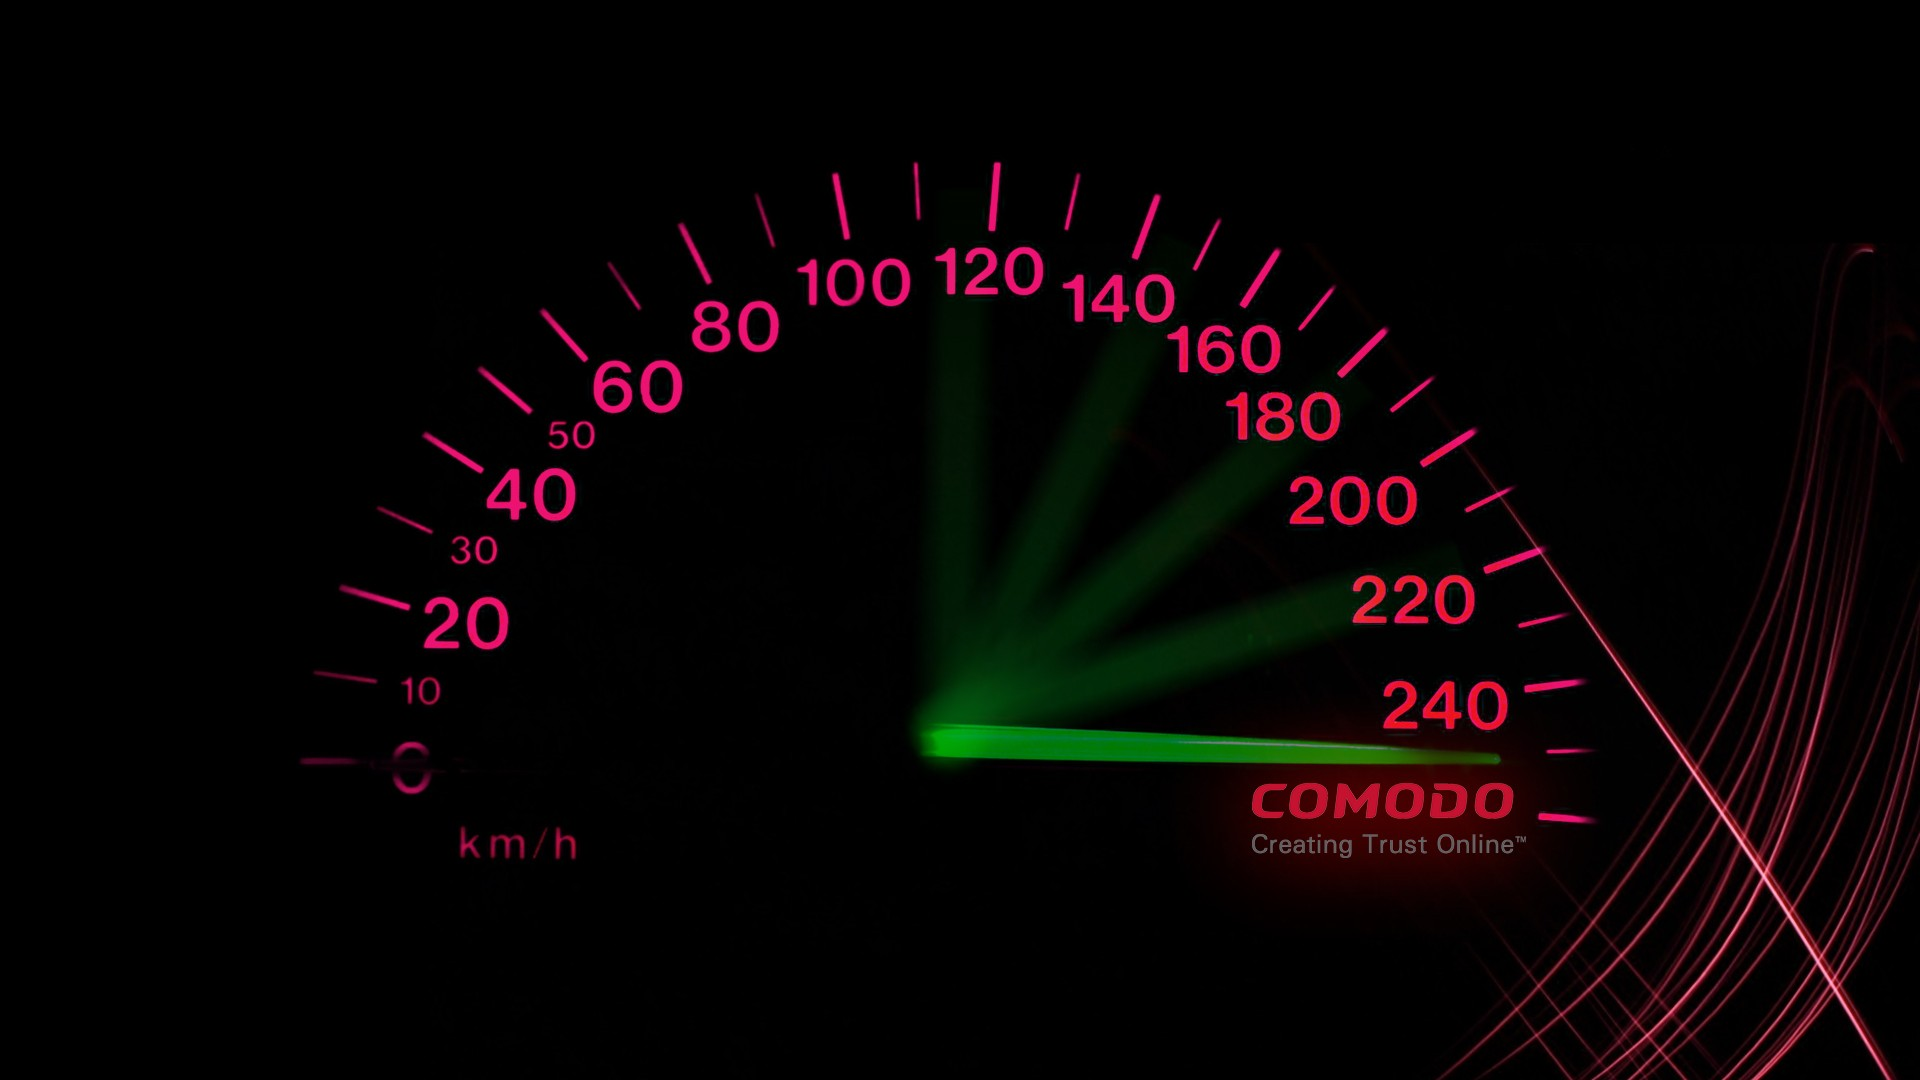 Retro Car Home Wallpaper Comodo Internet Trust Online Speedometer Wallpapers Hd